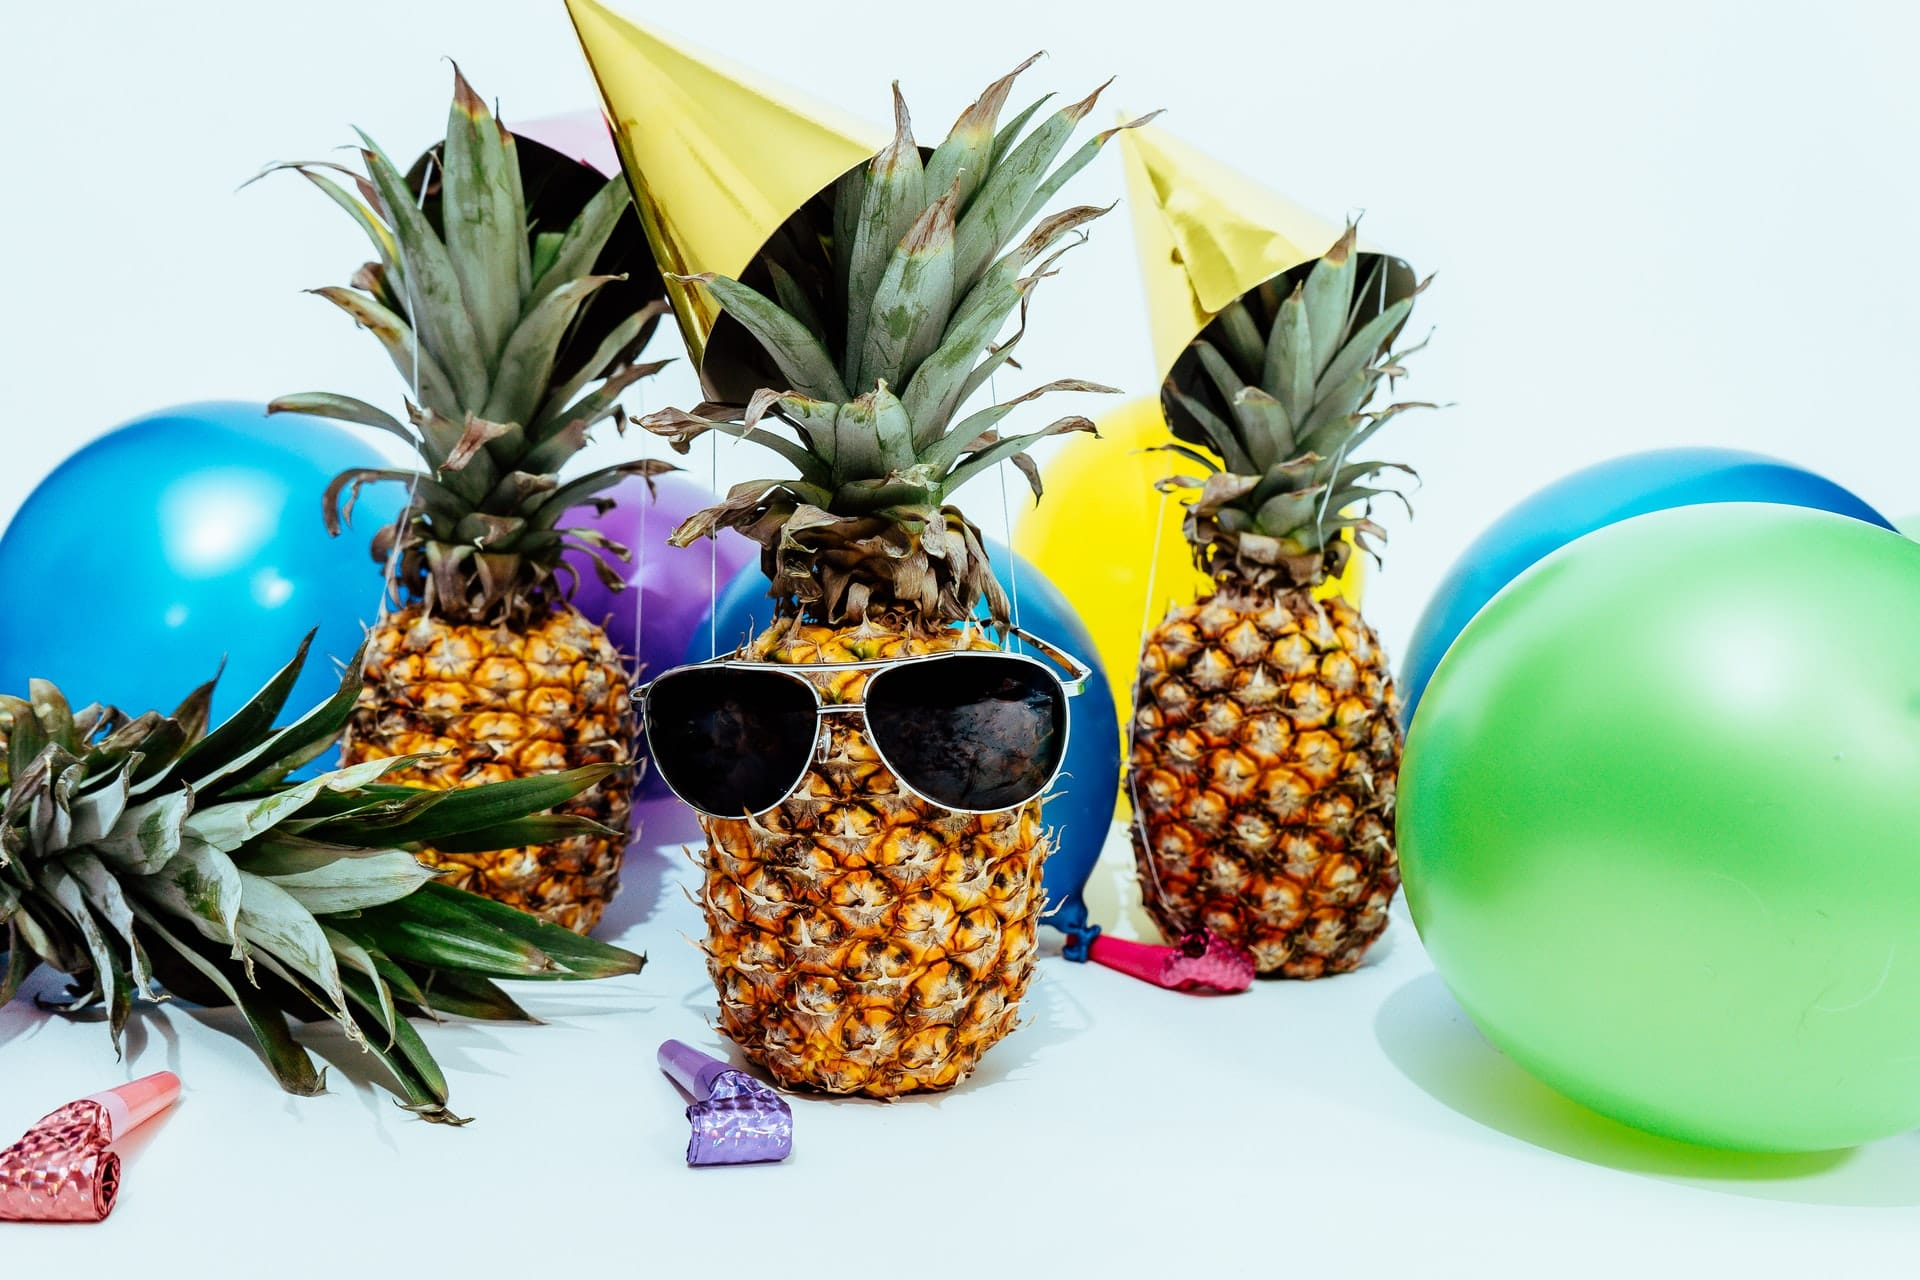 pineapples on a table with sunglasses and party hats surrounded by balloons and party favors